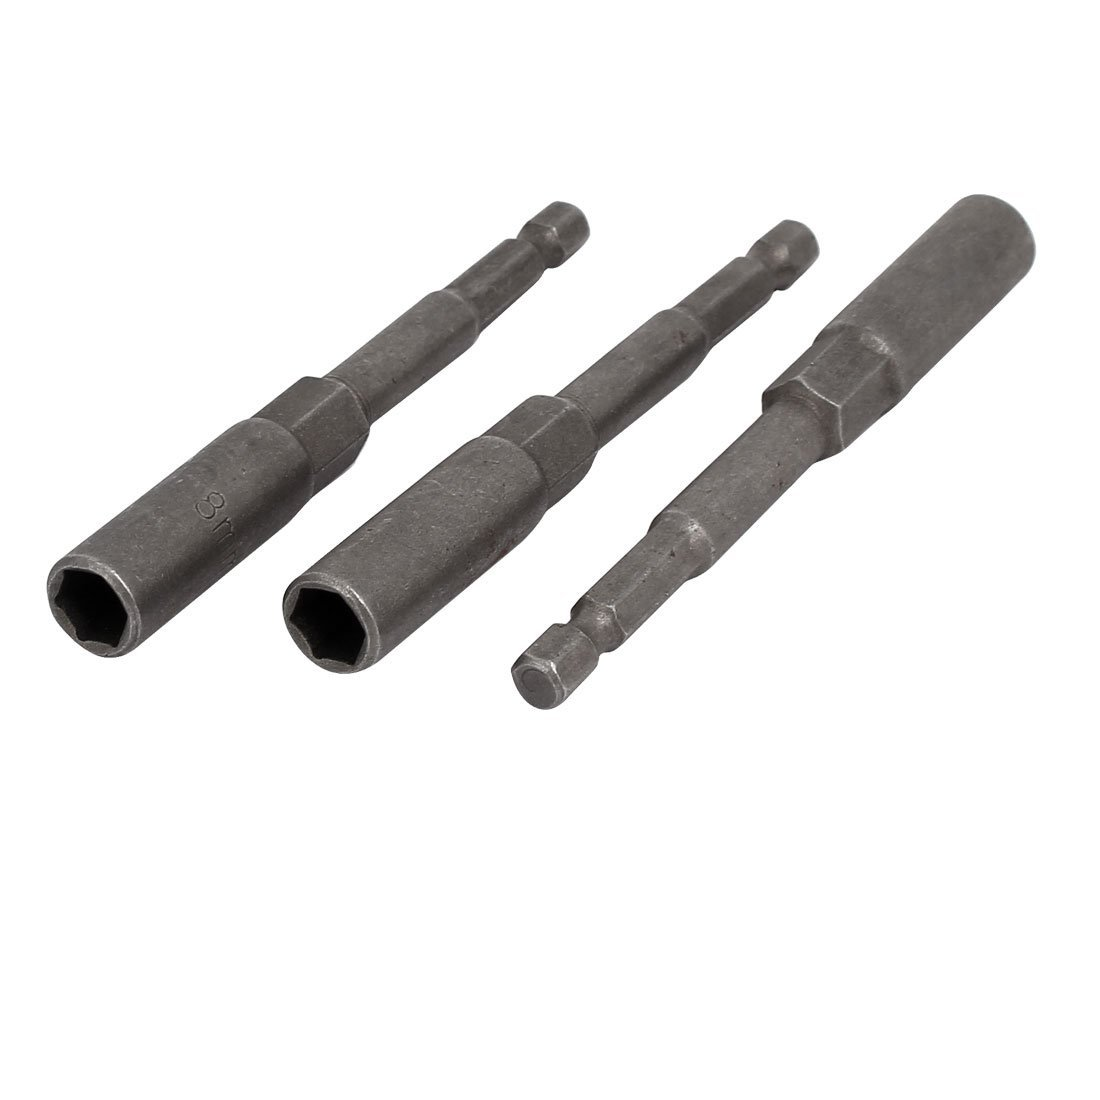 uxcell 8mm 5/16-inch Socket 1/4-inch Hex Shank 100mm Long Nut Drivers Adapter Drill Bit 3pcs